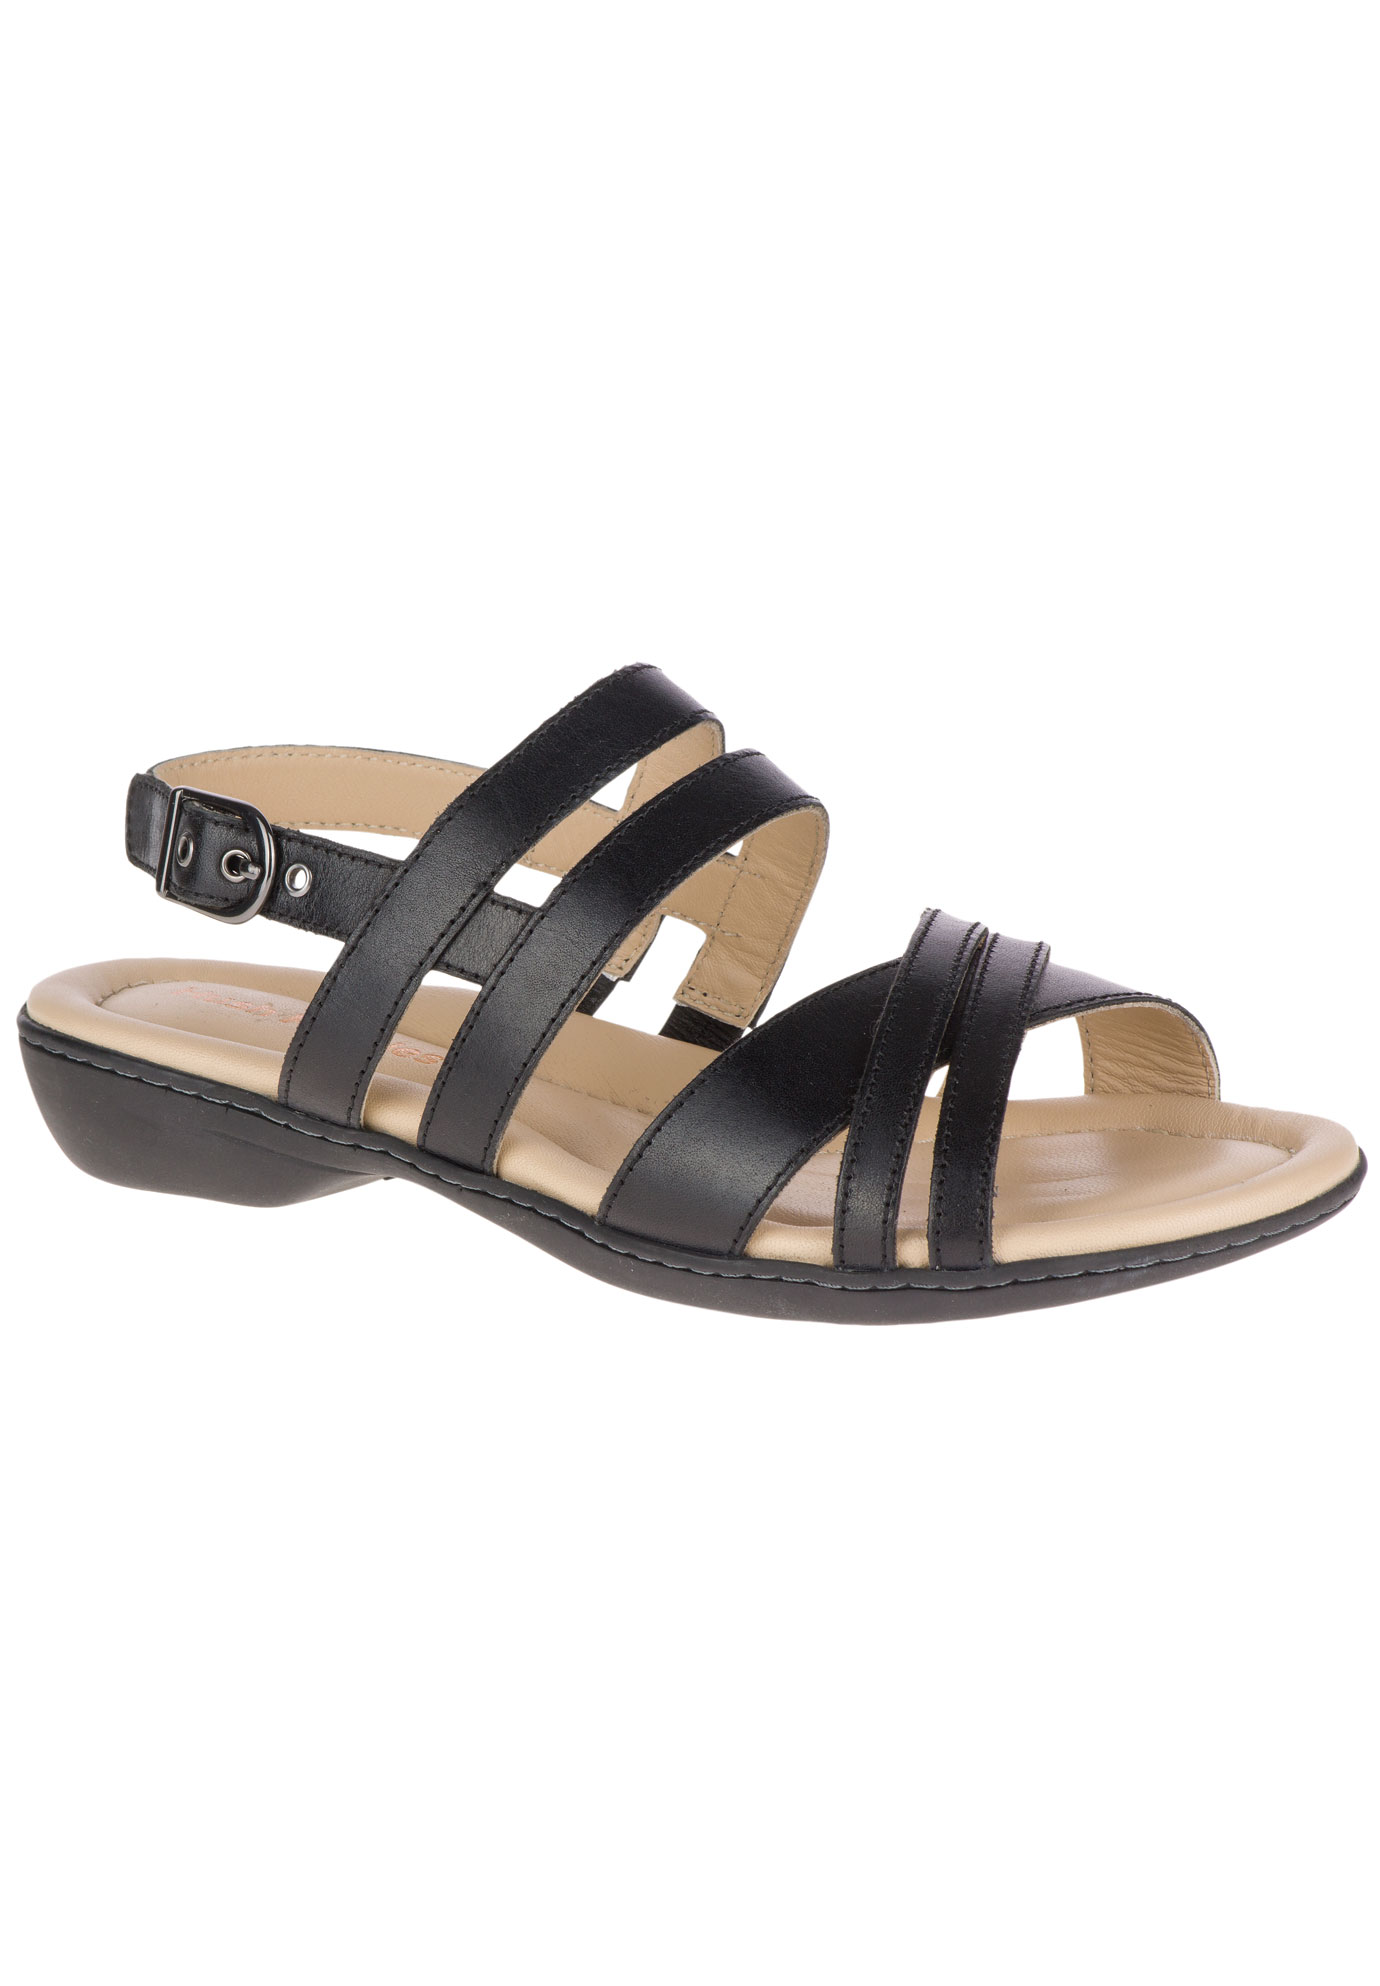 Dachshund Strappy Sandals by Hush Puppies® from china cheap price cheap sale under $60 buy cheap wiki JKoADN